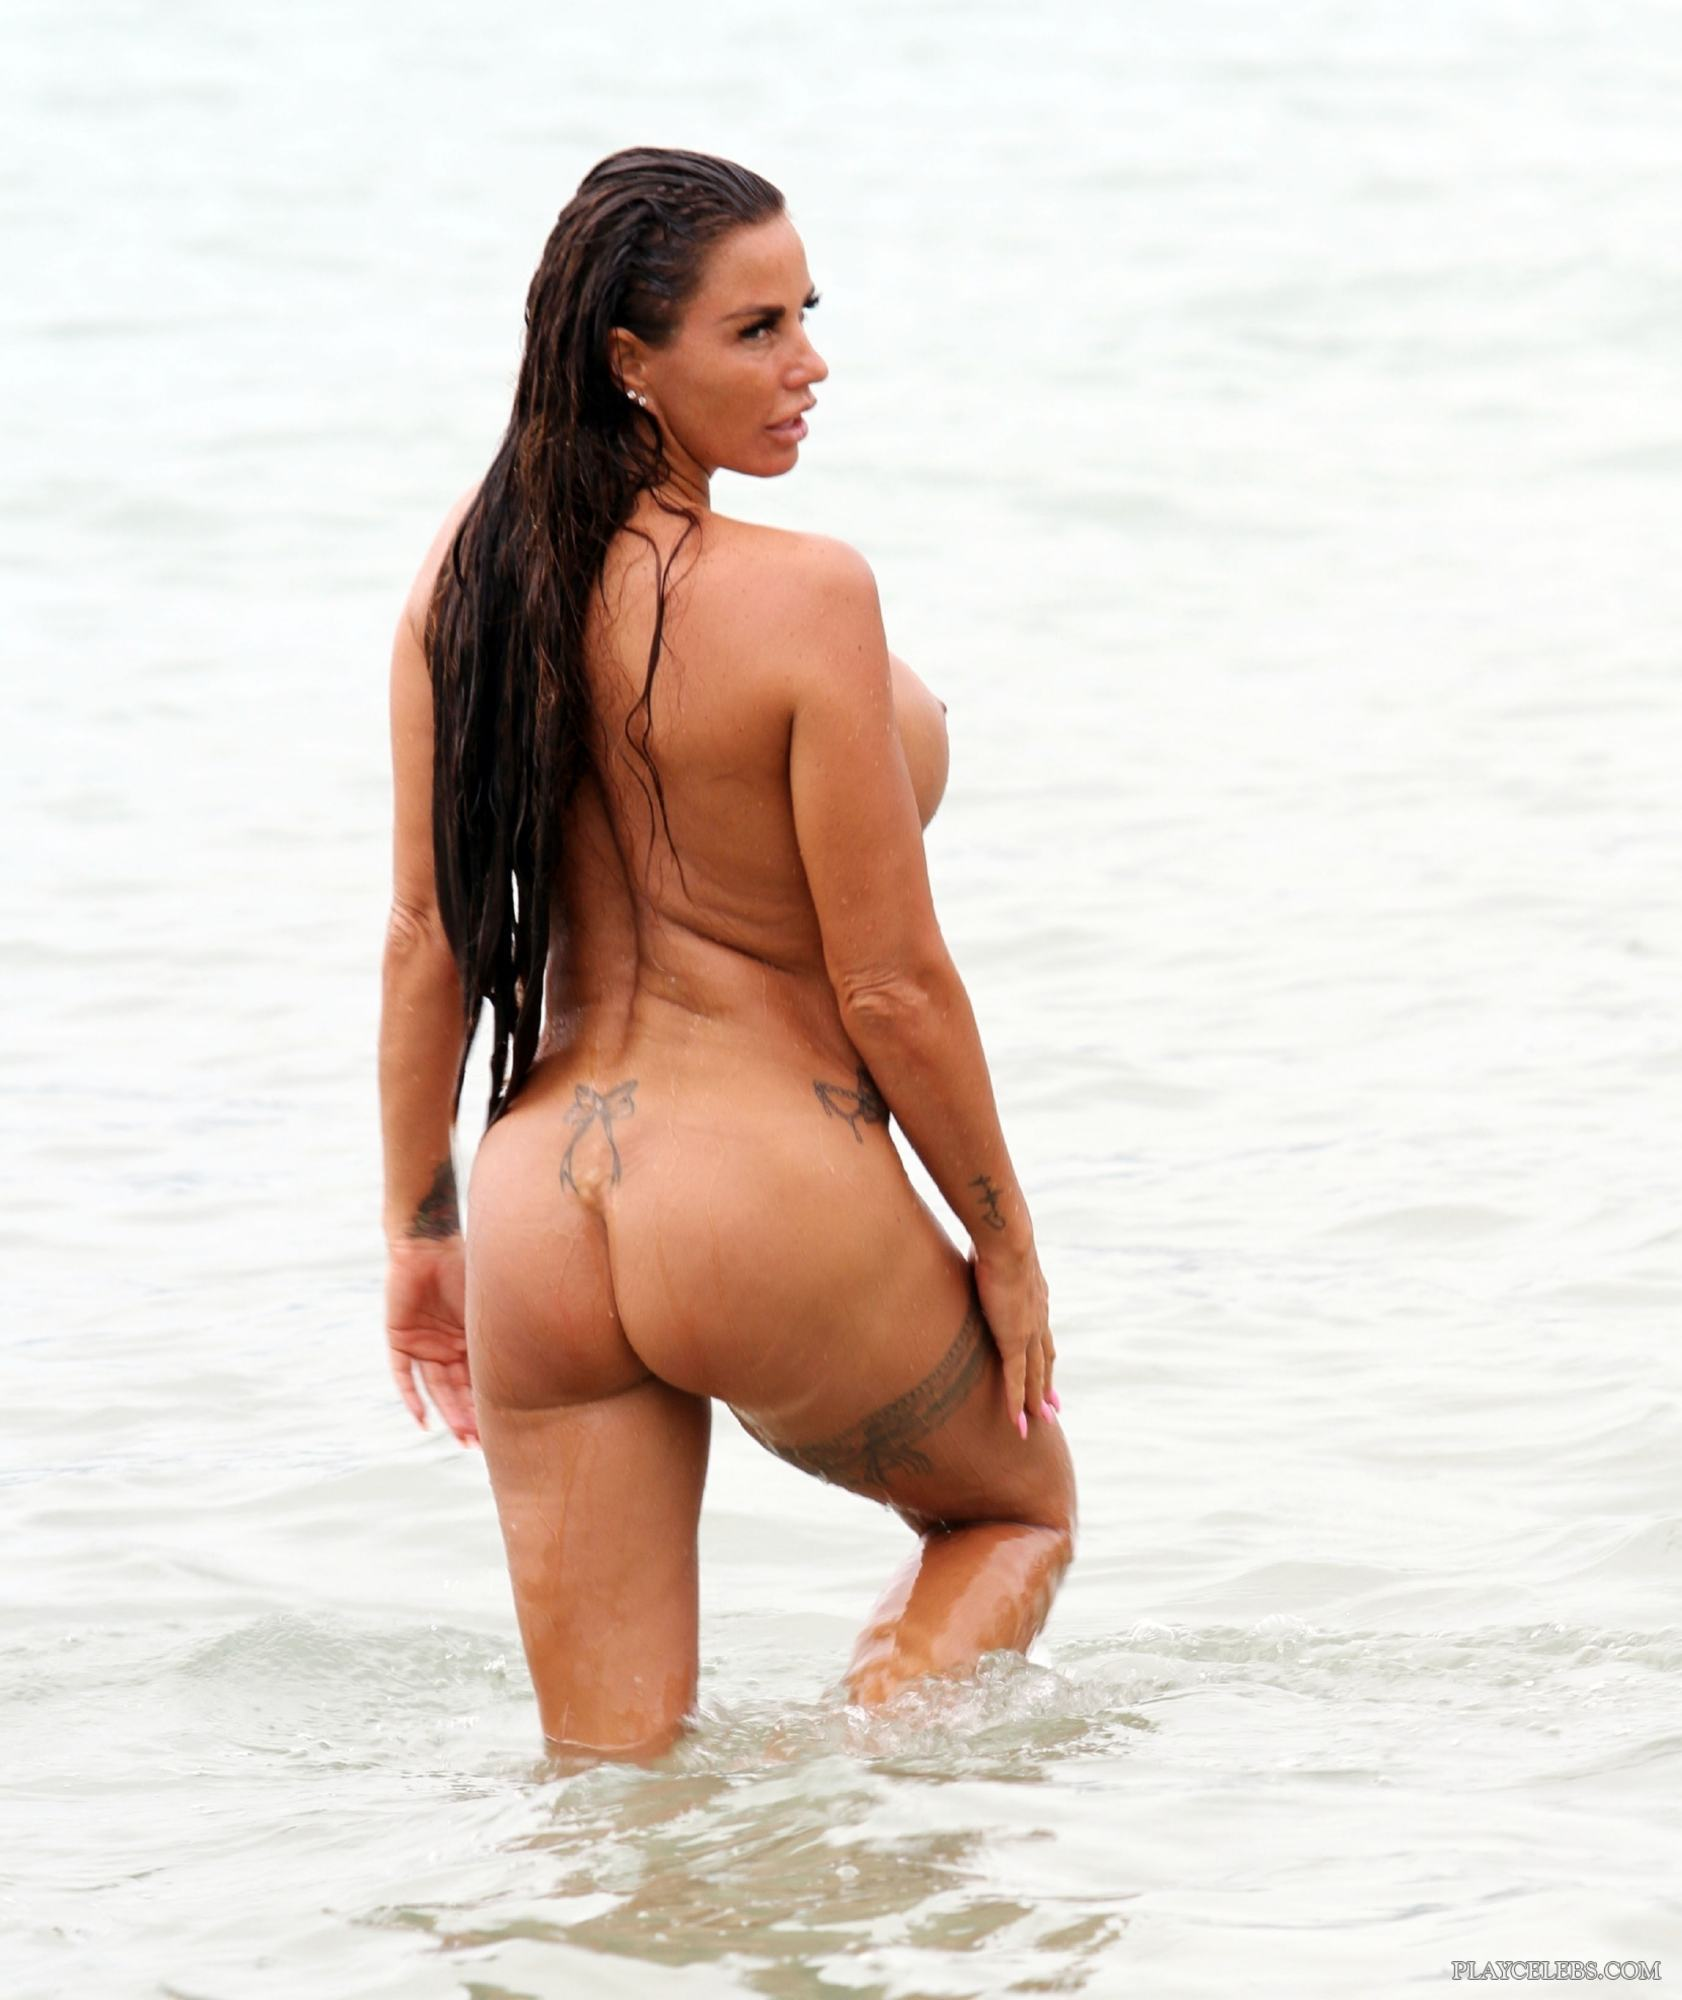 Katie Price Exposing Totally Nude Wet Body On A Beach